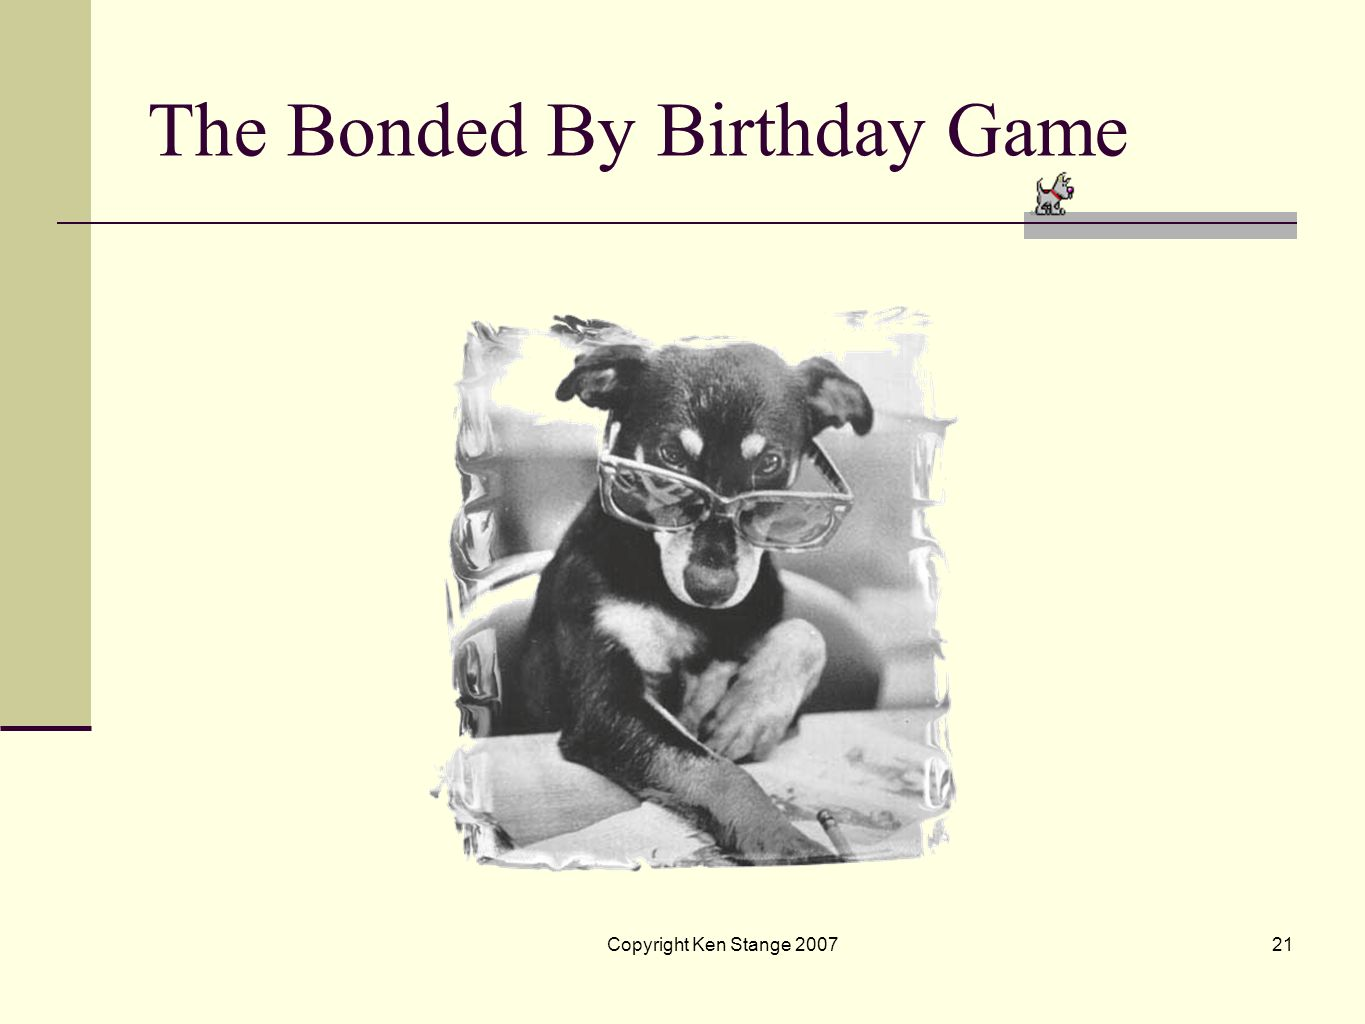 The Bonded By Birthday Game